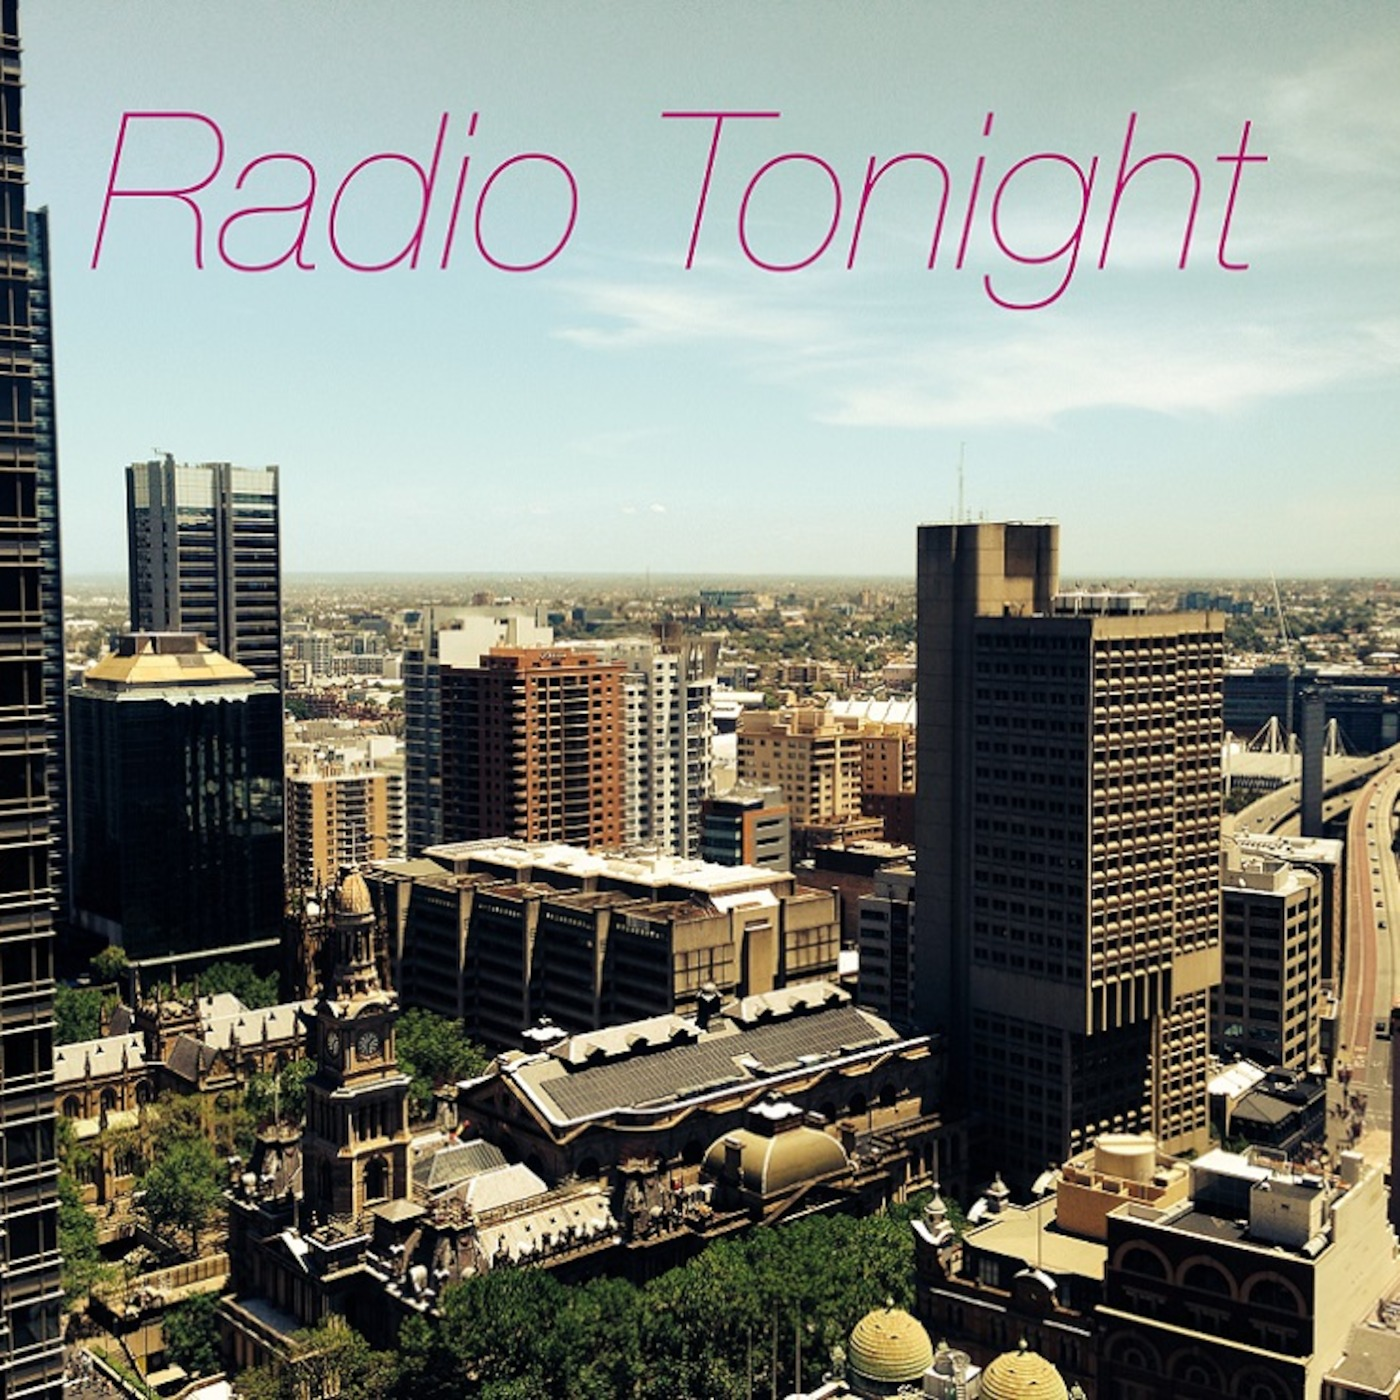 Radio Tonight